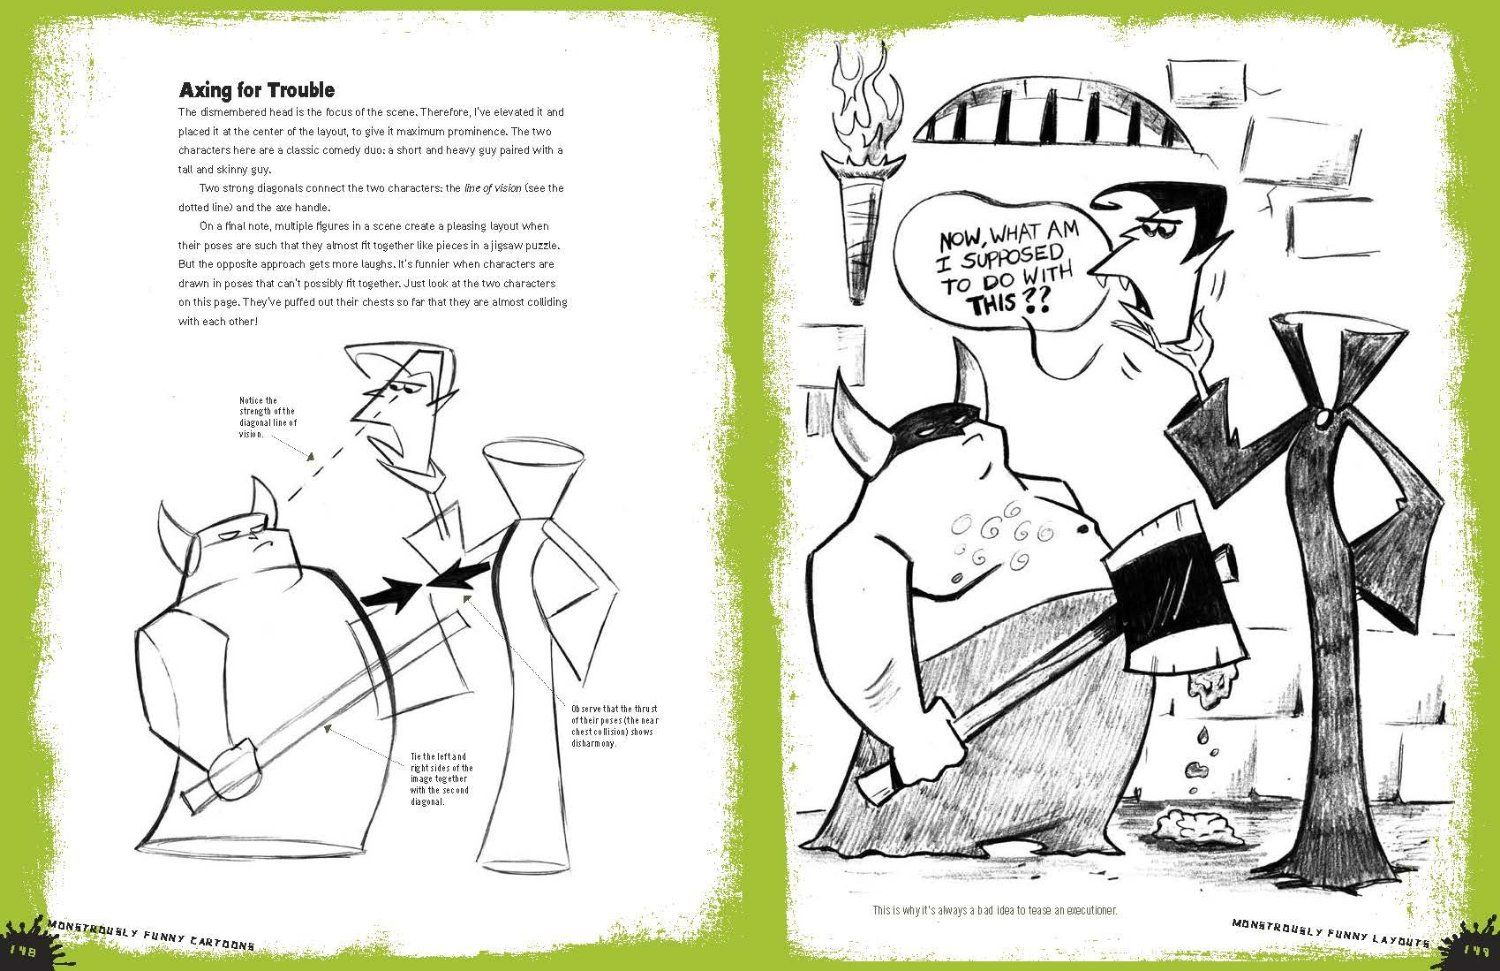 Christopher Hart Cartooning The Ultimate Character Design Book Pdf : Christopher hart monstrously funny cartoons